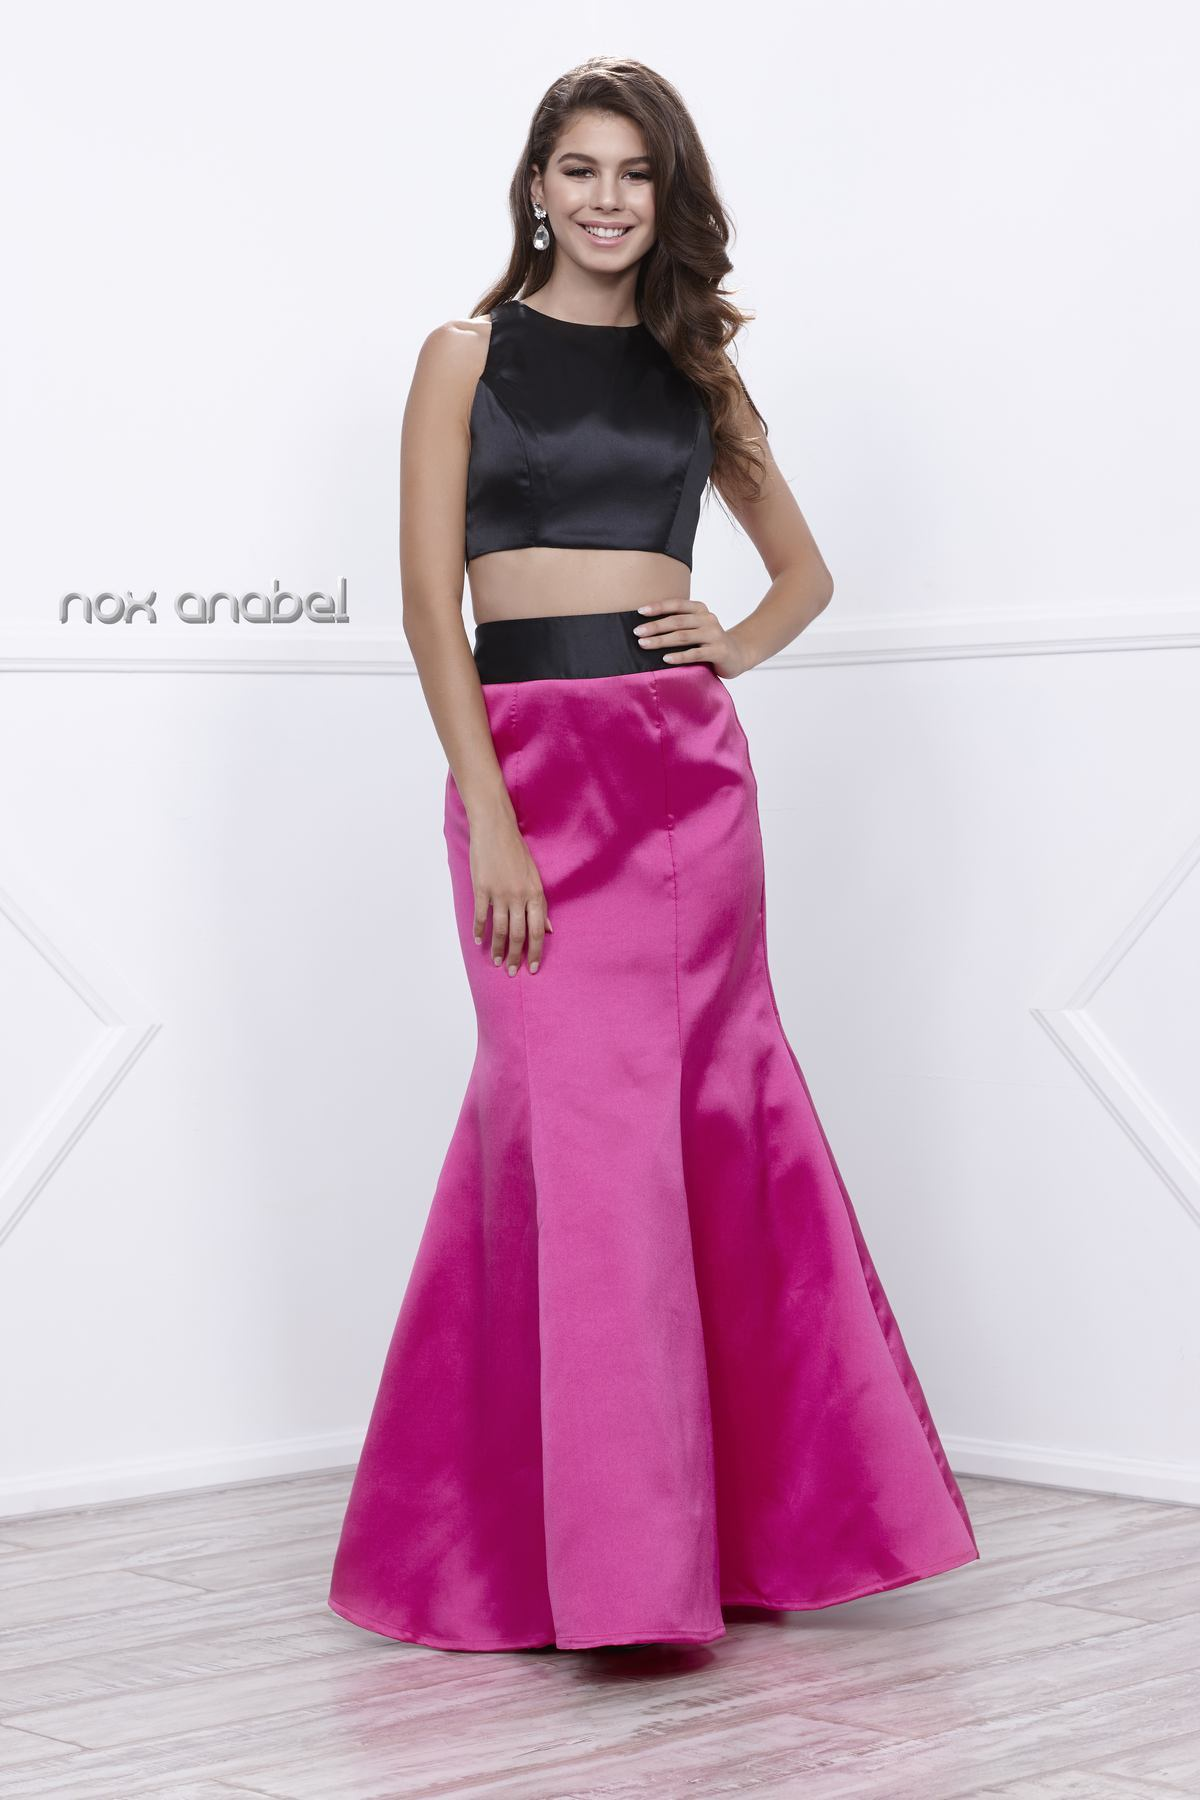 d39c6962b47d Two Piece Crop Top with a Fuchsia Bustle Skirt | Barbara's Boutique